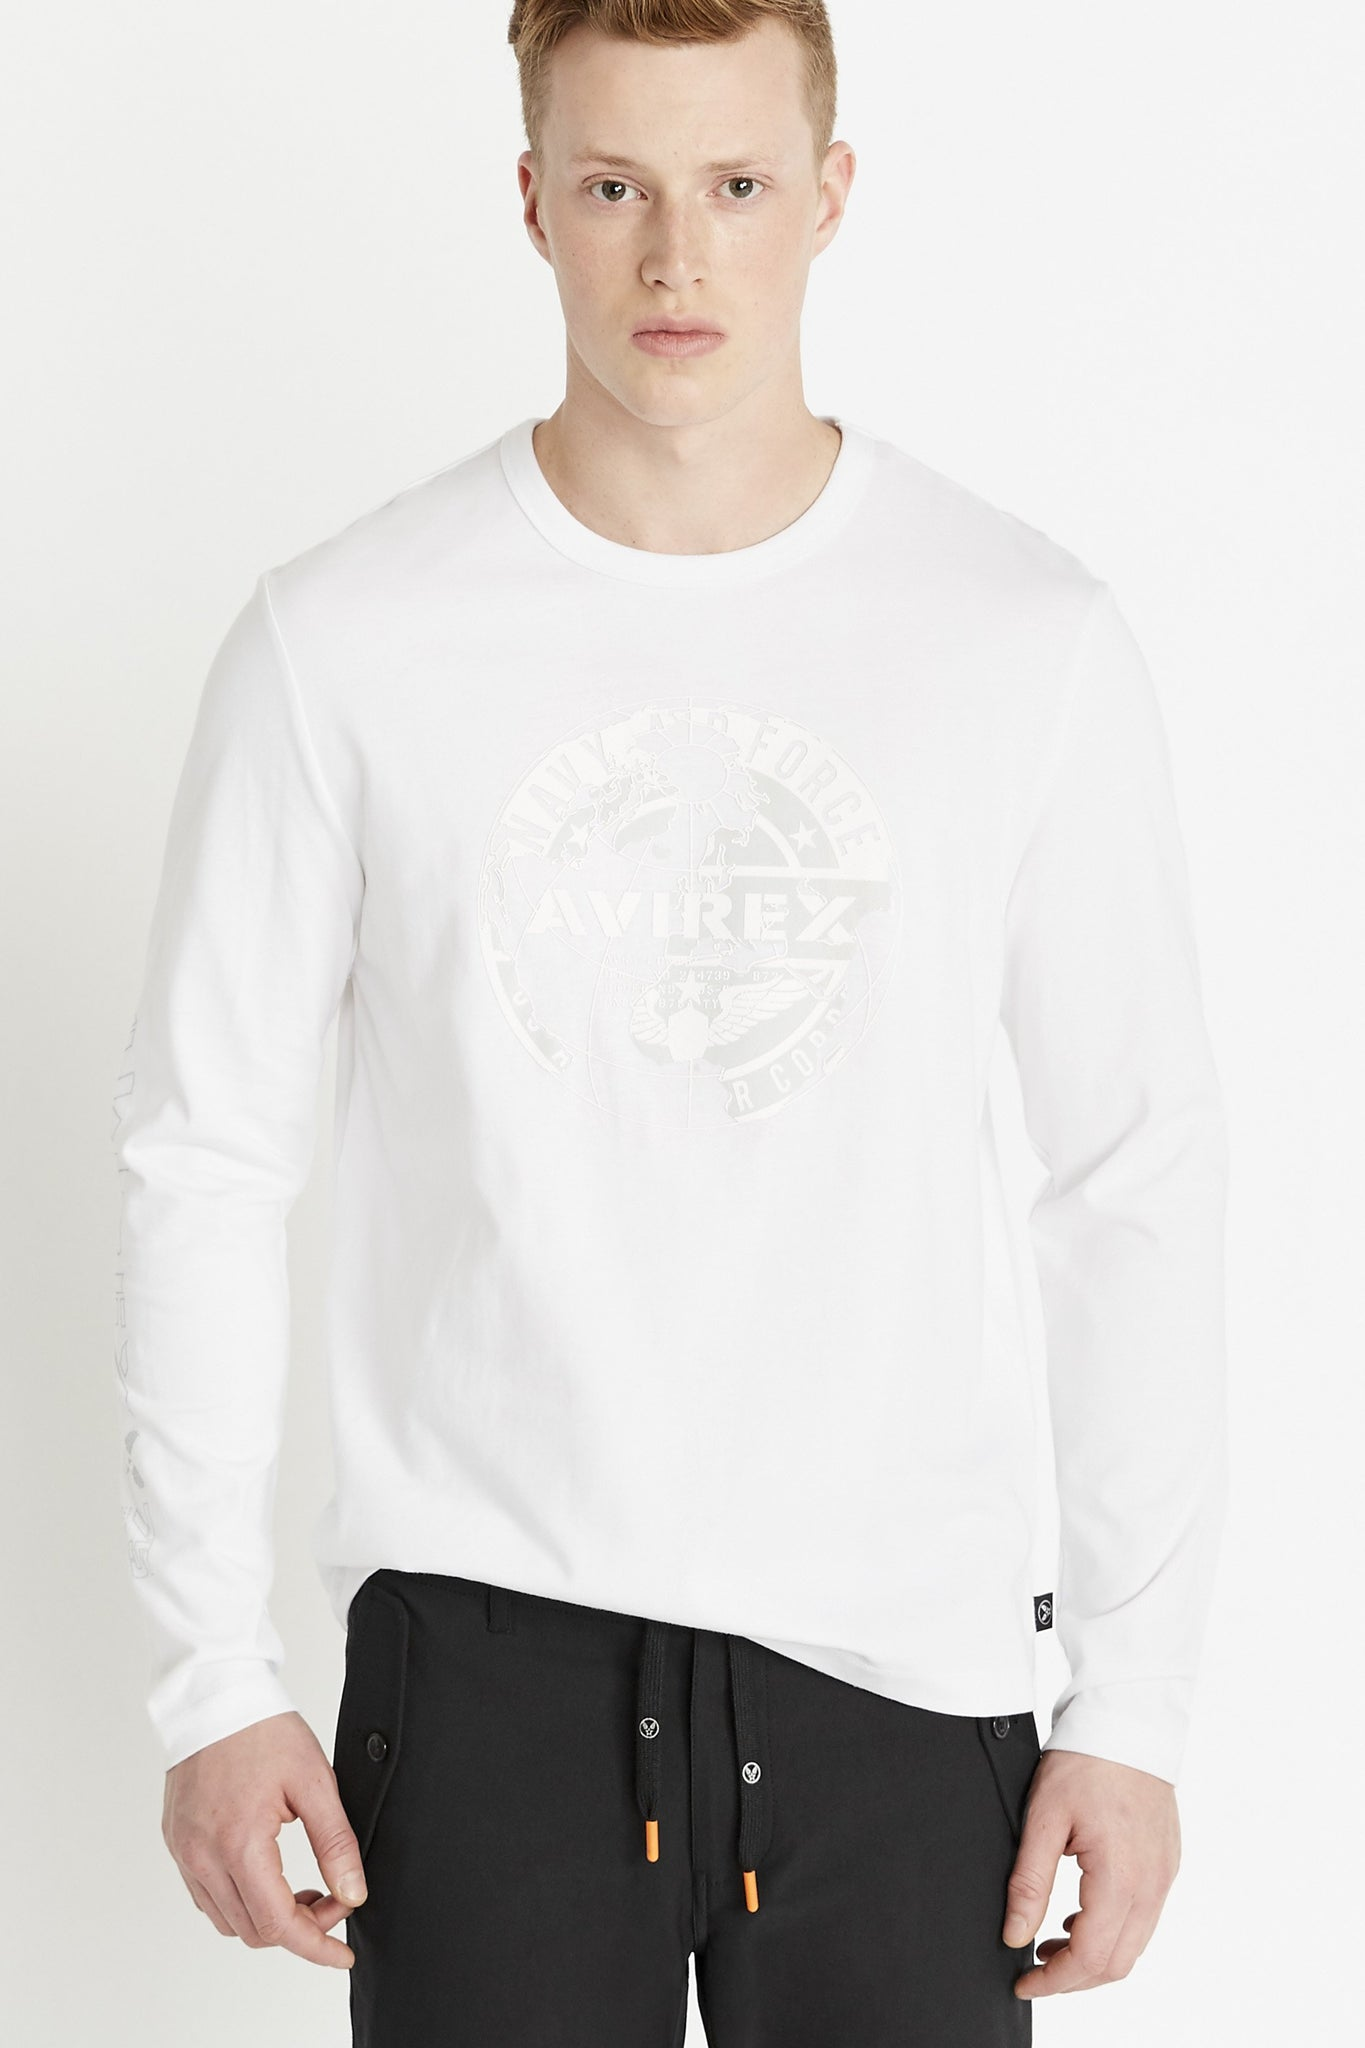 Men wearing a white long sleeve crew neck T-shirt with white round logo graphic print on chest